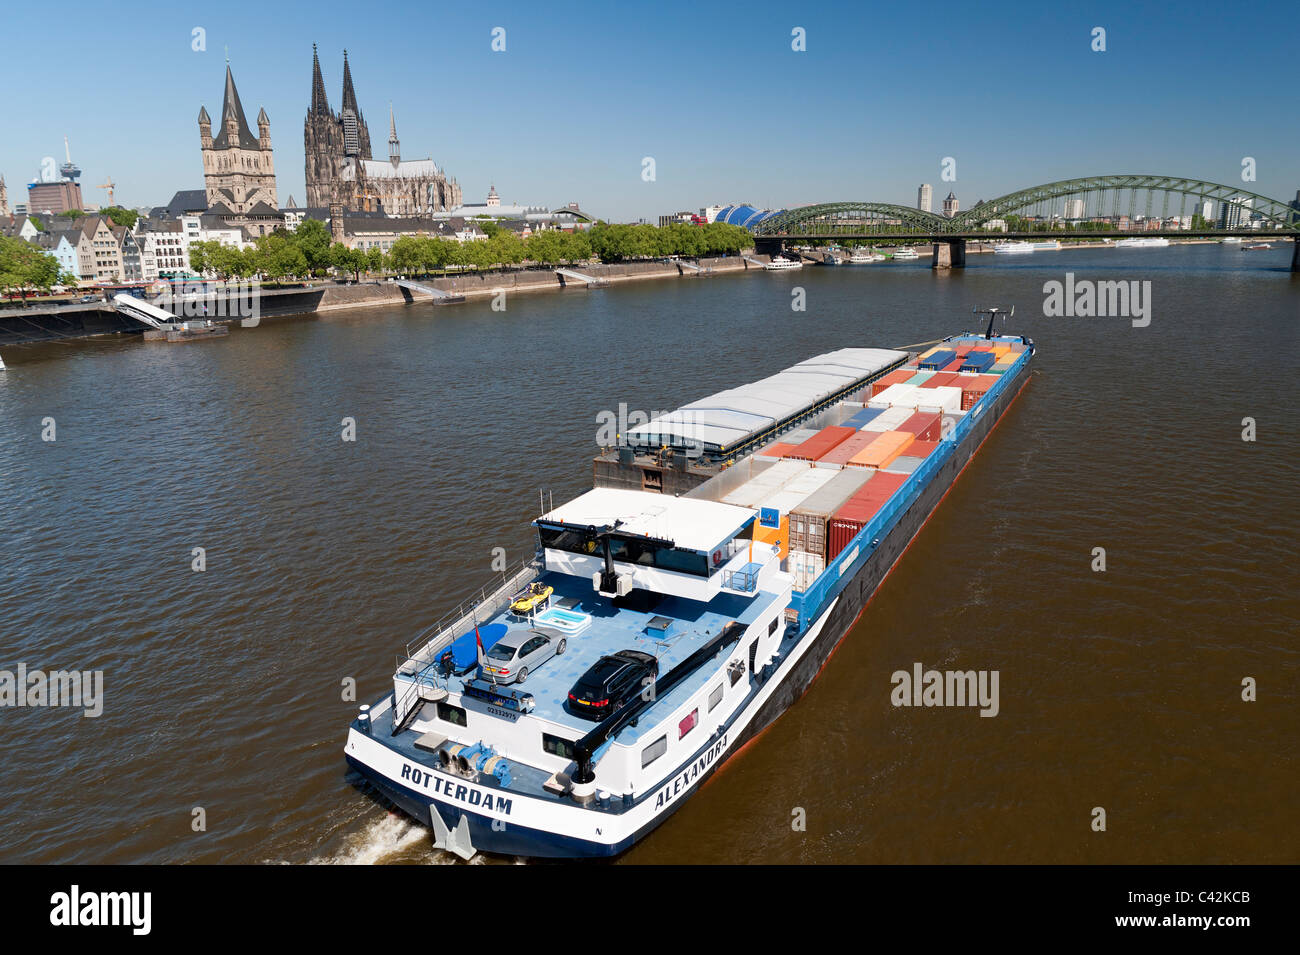 A Barge carrying shipping containers travels along the River Rhine in Cologne Germany - Stock Image